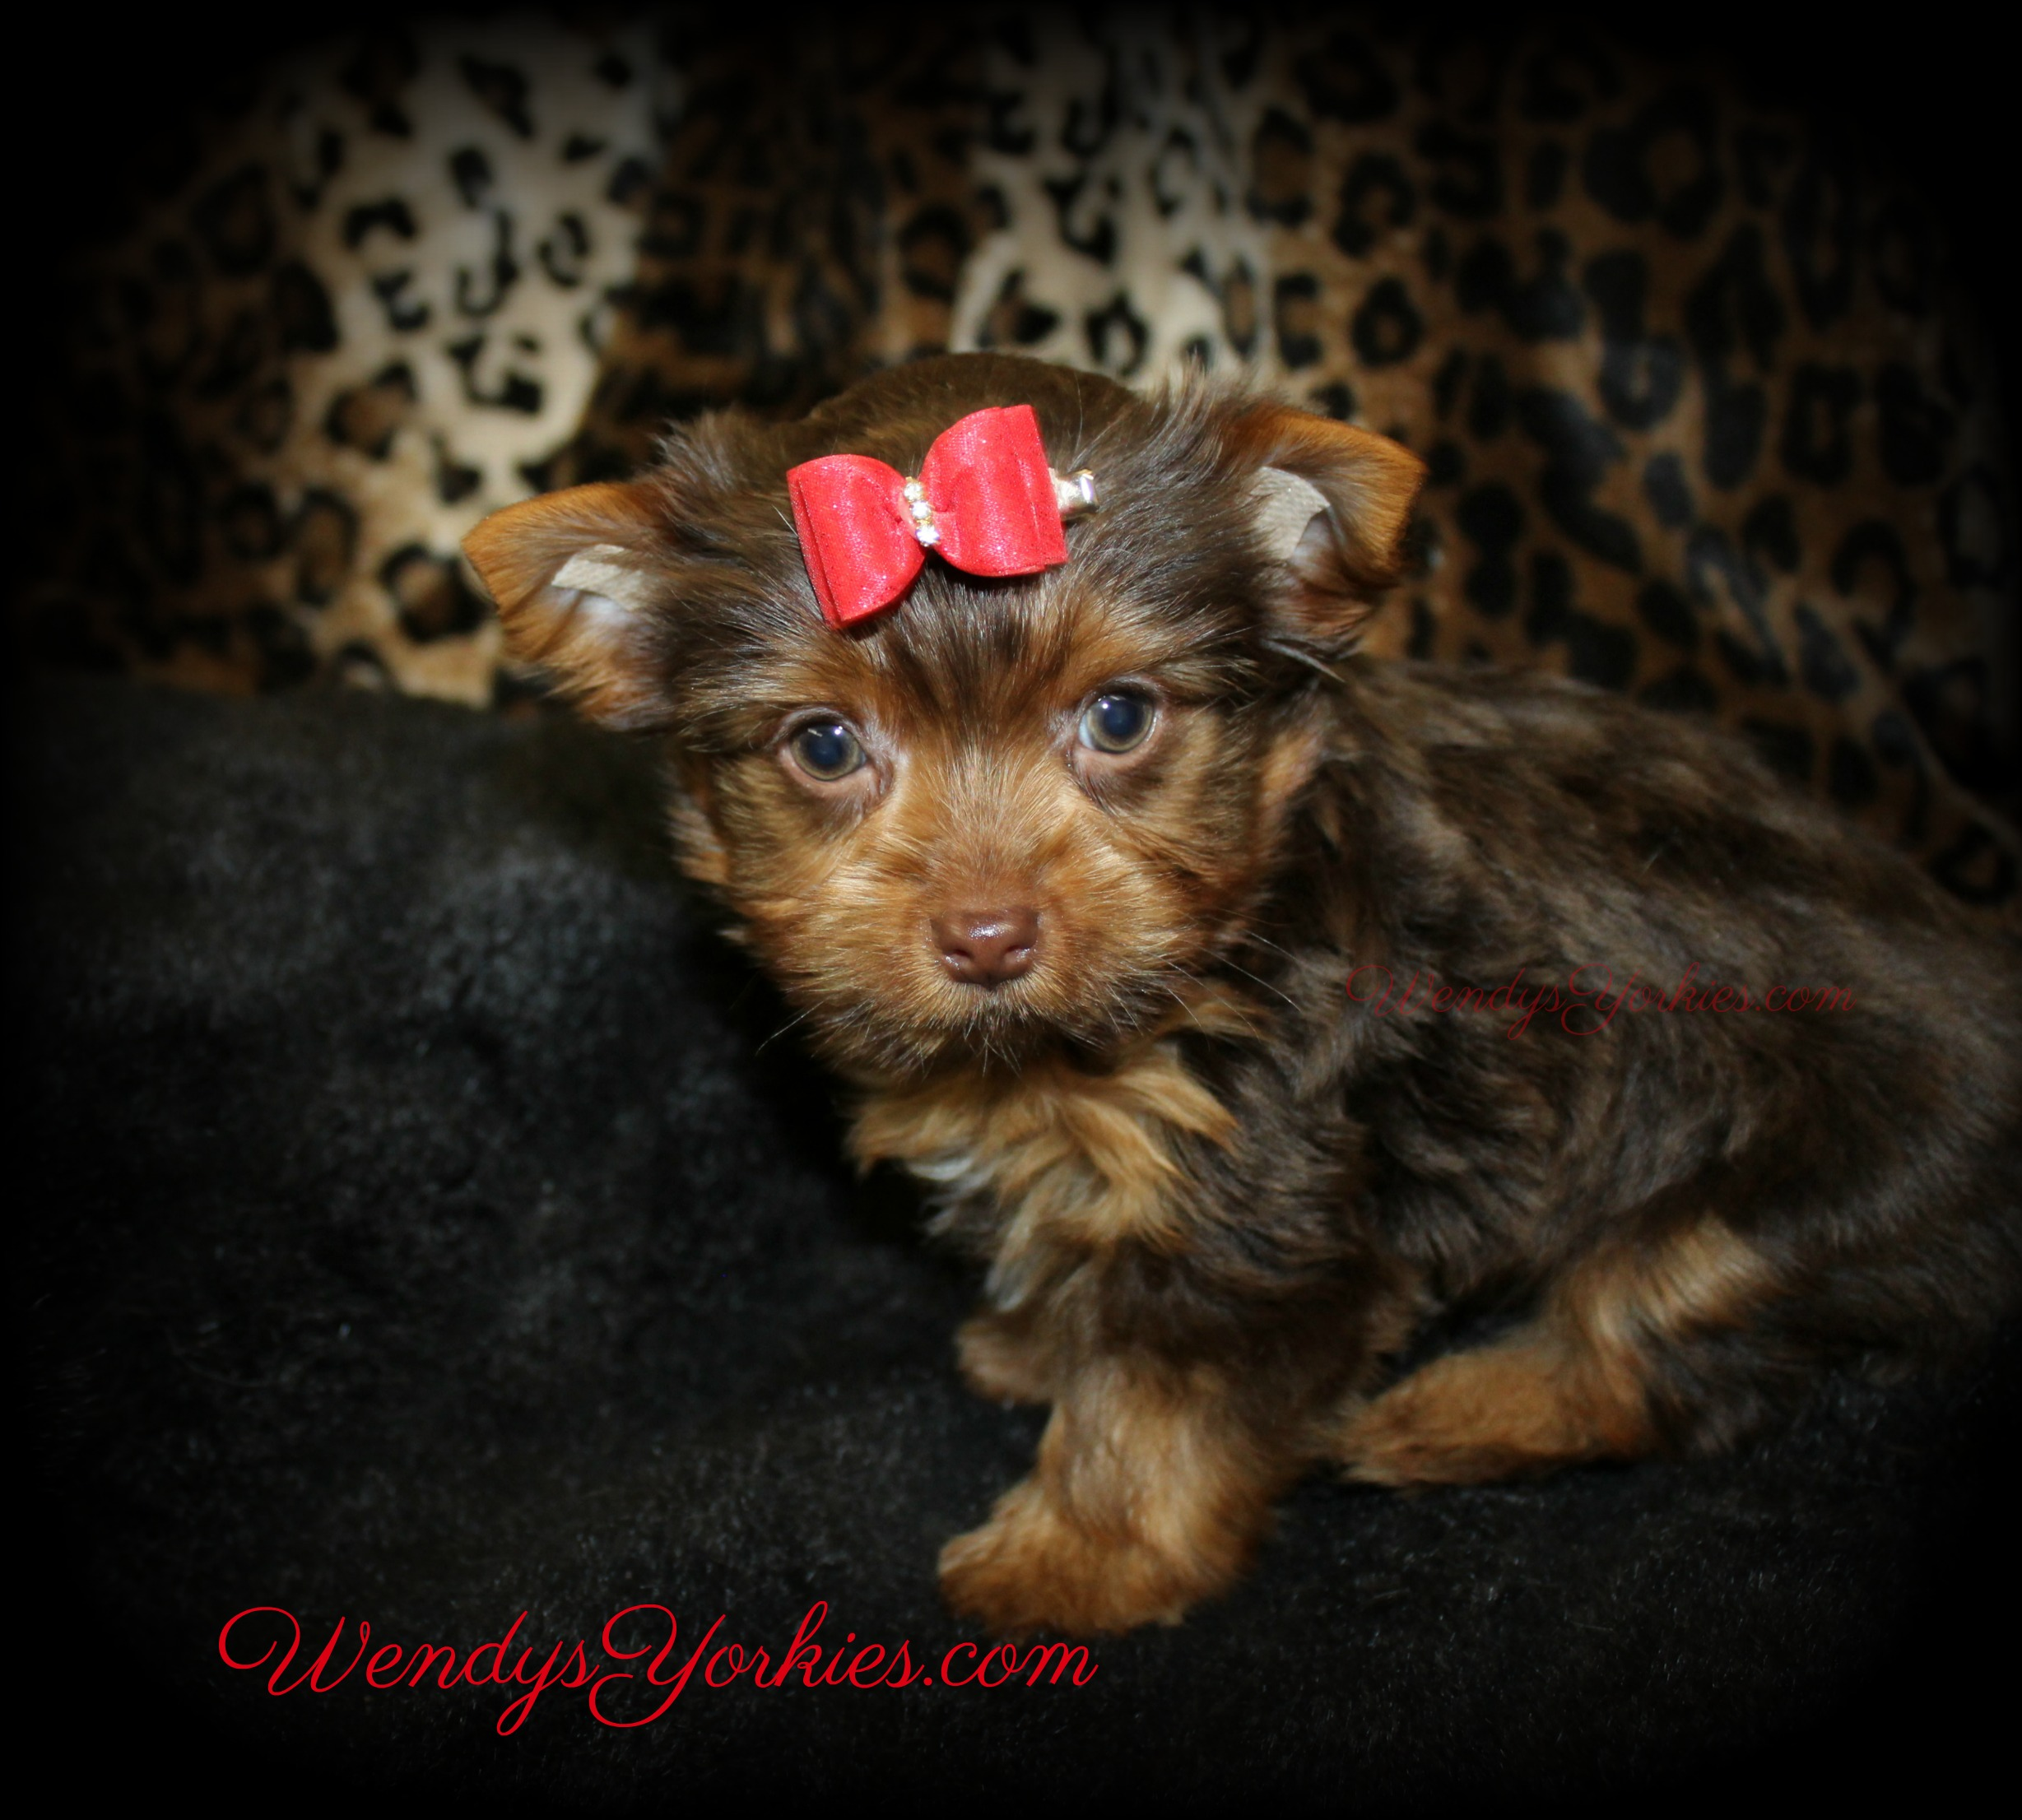 Chocolate Yorkie puppy for sale in Texas, Dixie, WendysYorkies.com